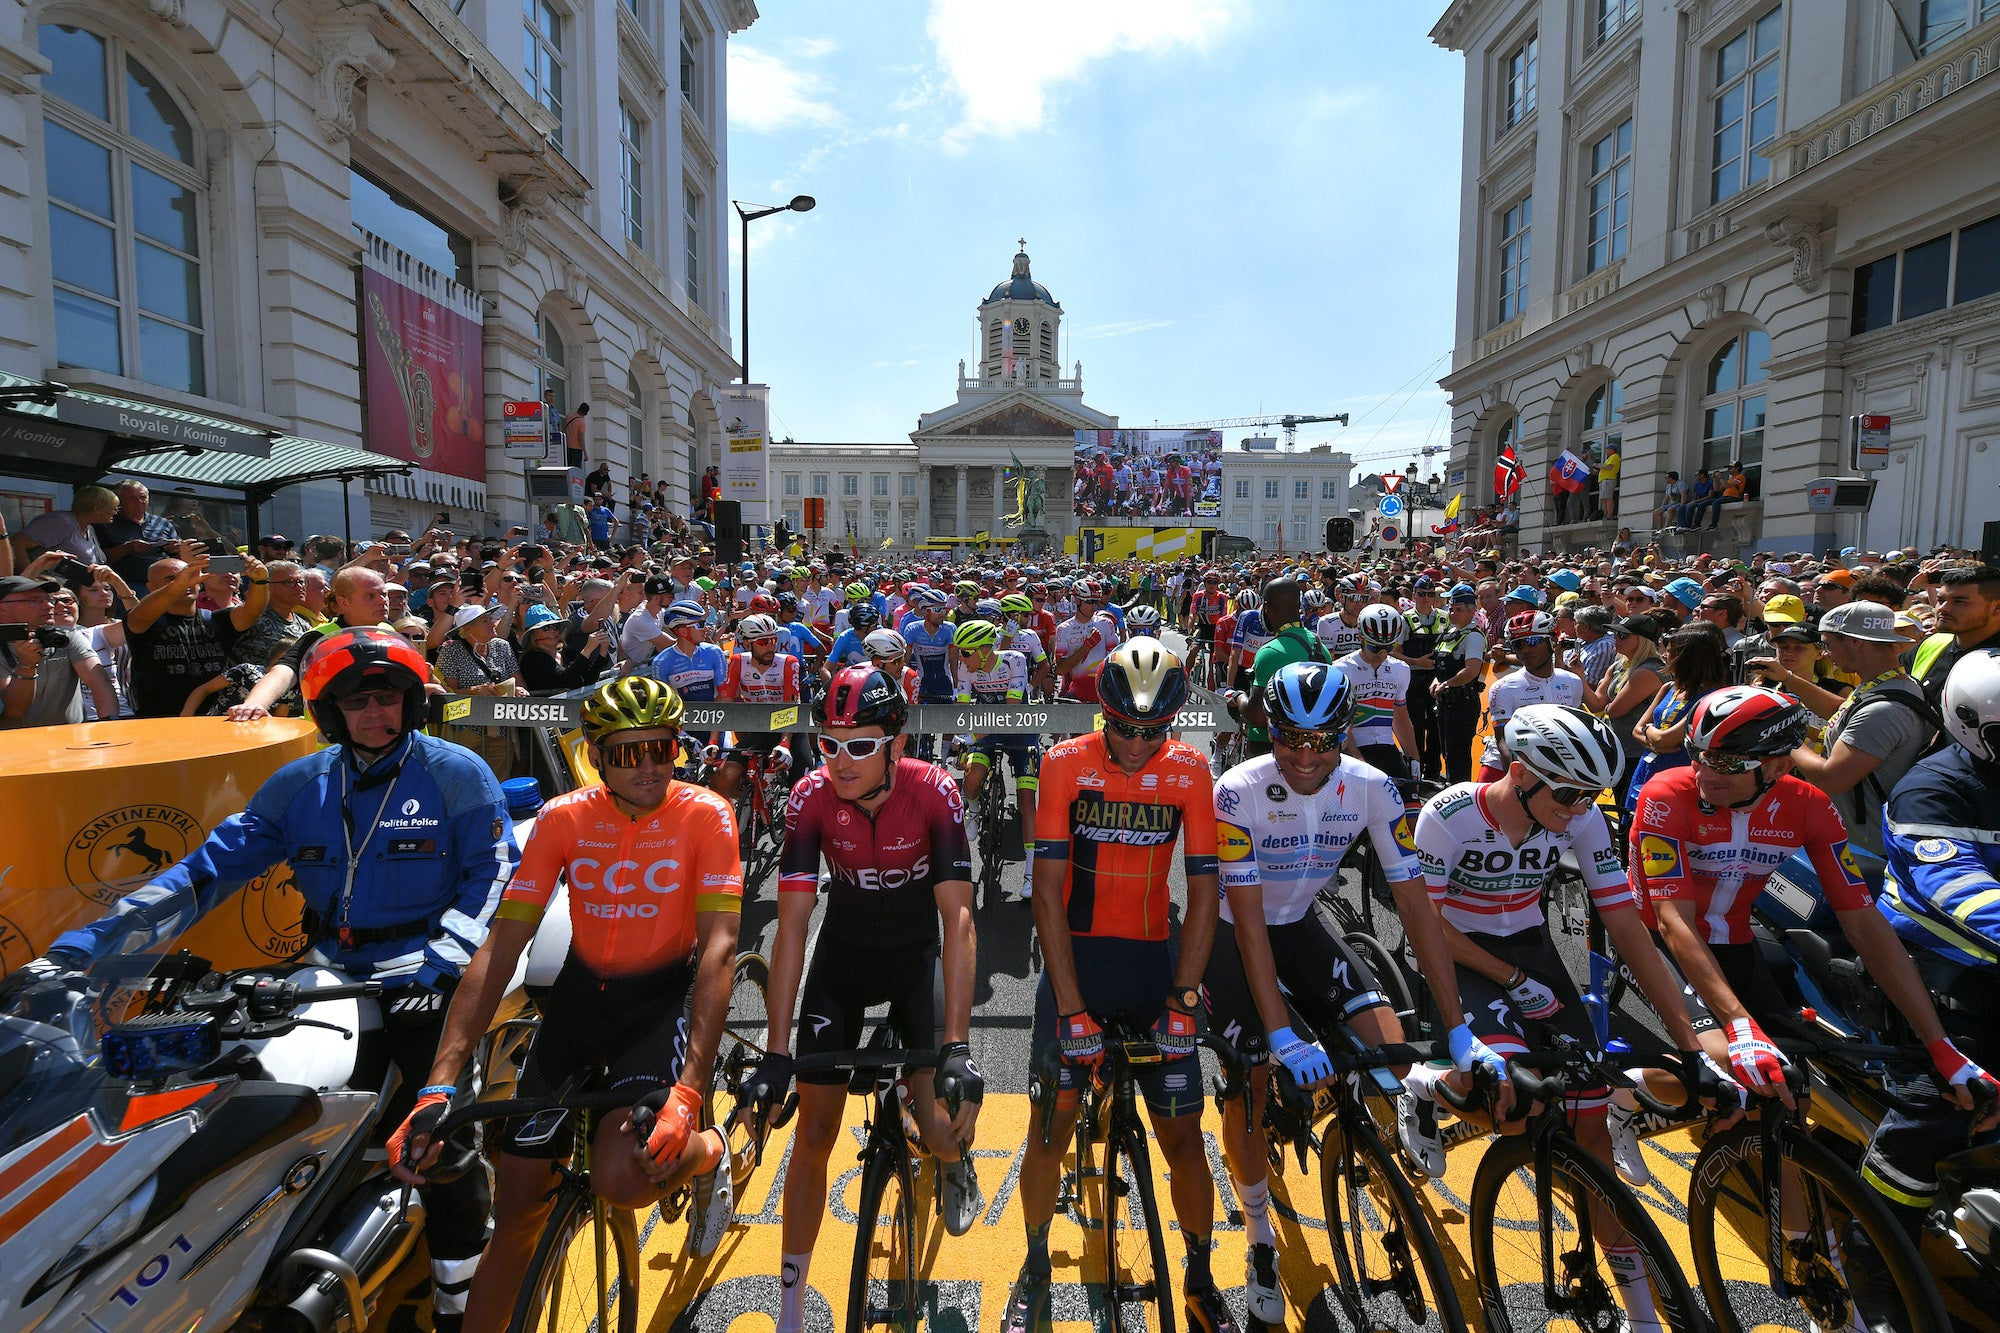 Teams with two COVID-19 cases will be removed from Tour de France – VeloNews.com